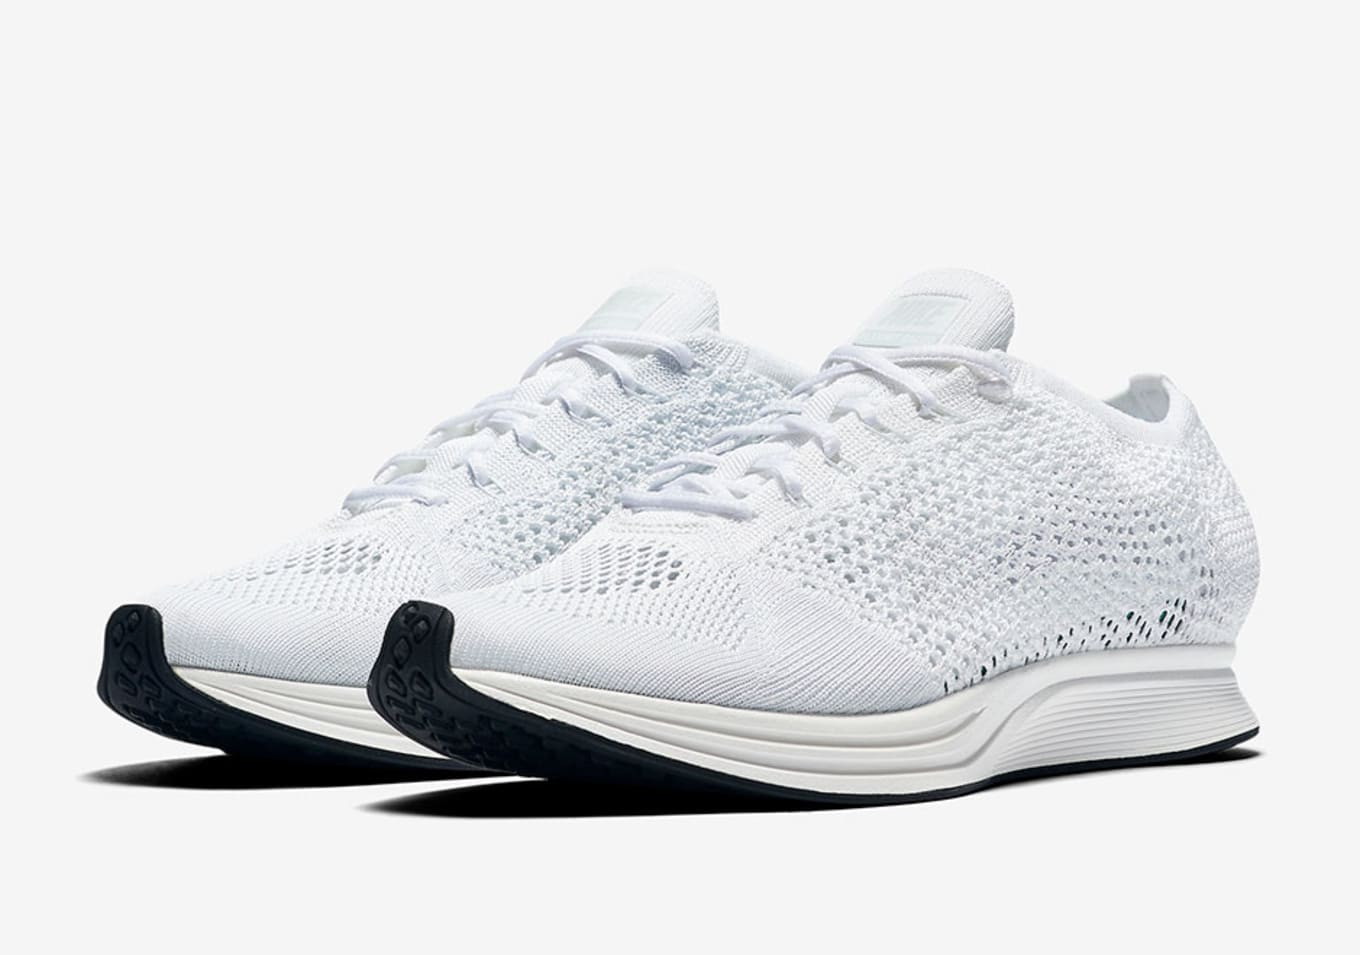 uk availability 8e980 cadd3 More Nike Flyknit Racers Are Releasing in 2017. The popular Nike silhouette  gets a